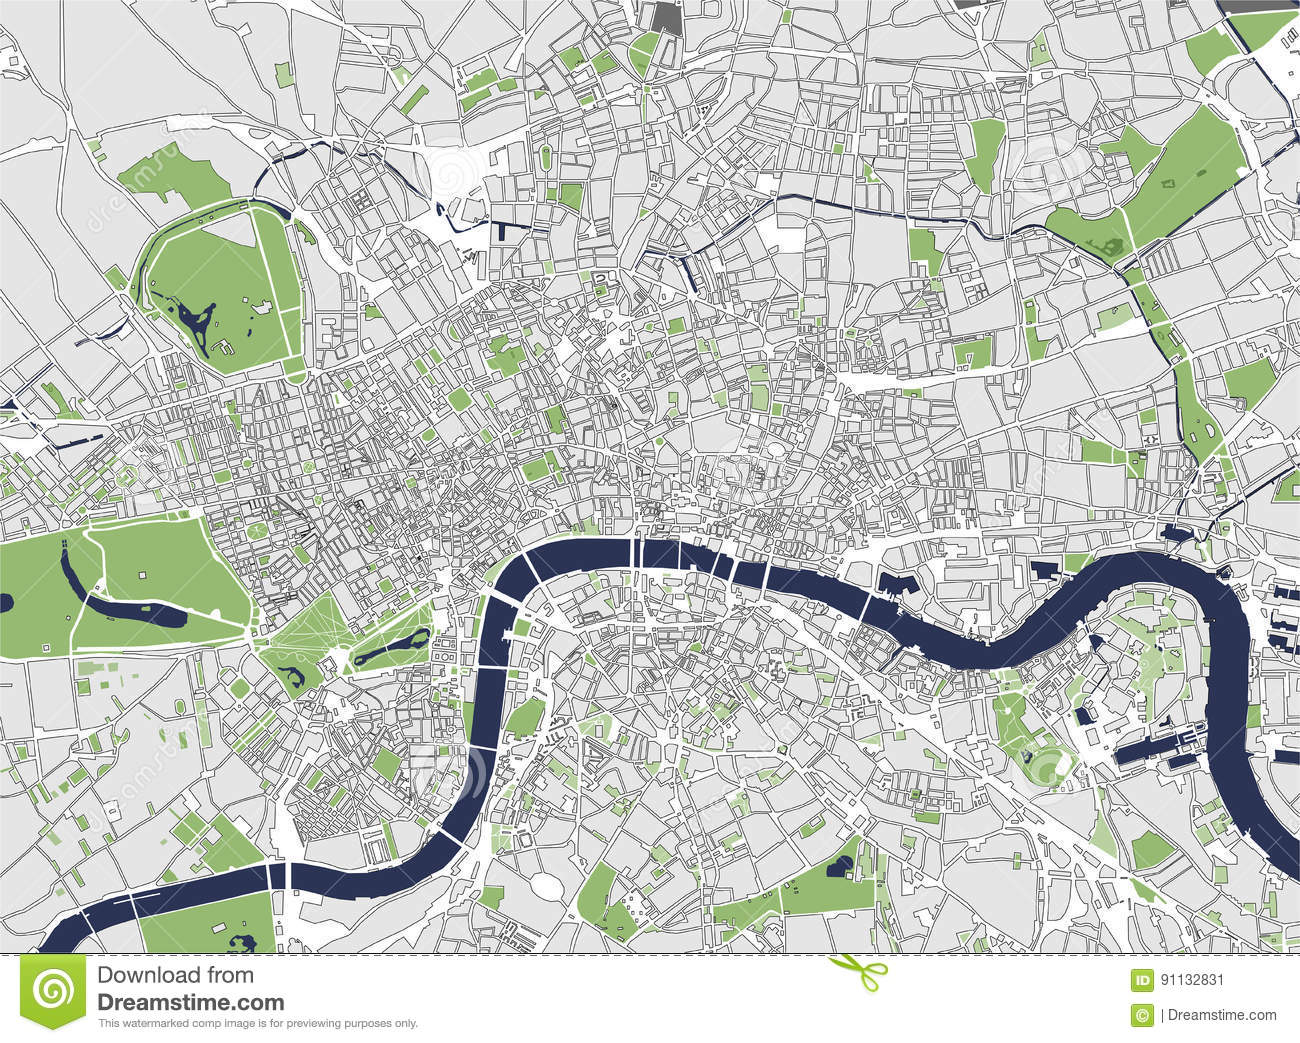 Map Of City Of London.Map Of The City Of London Great Britain Stock Illustration